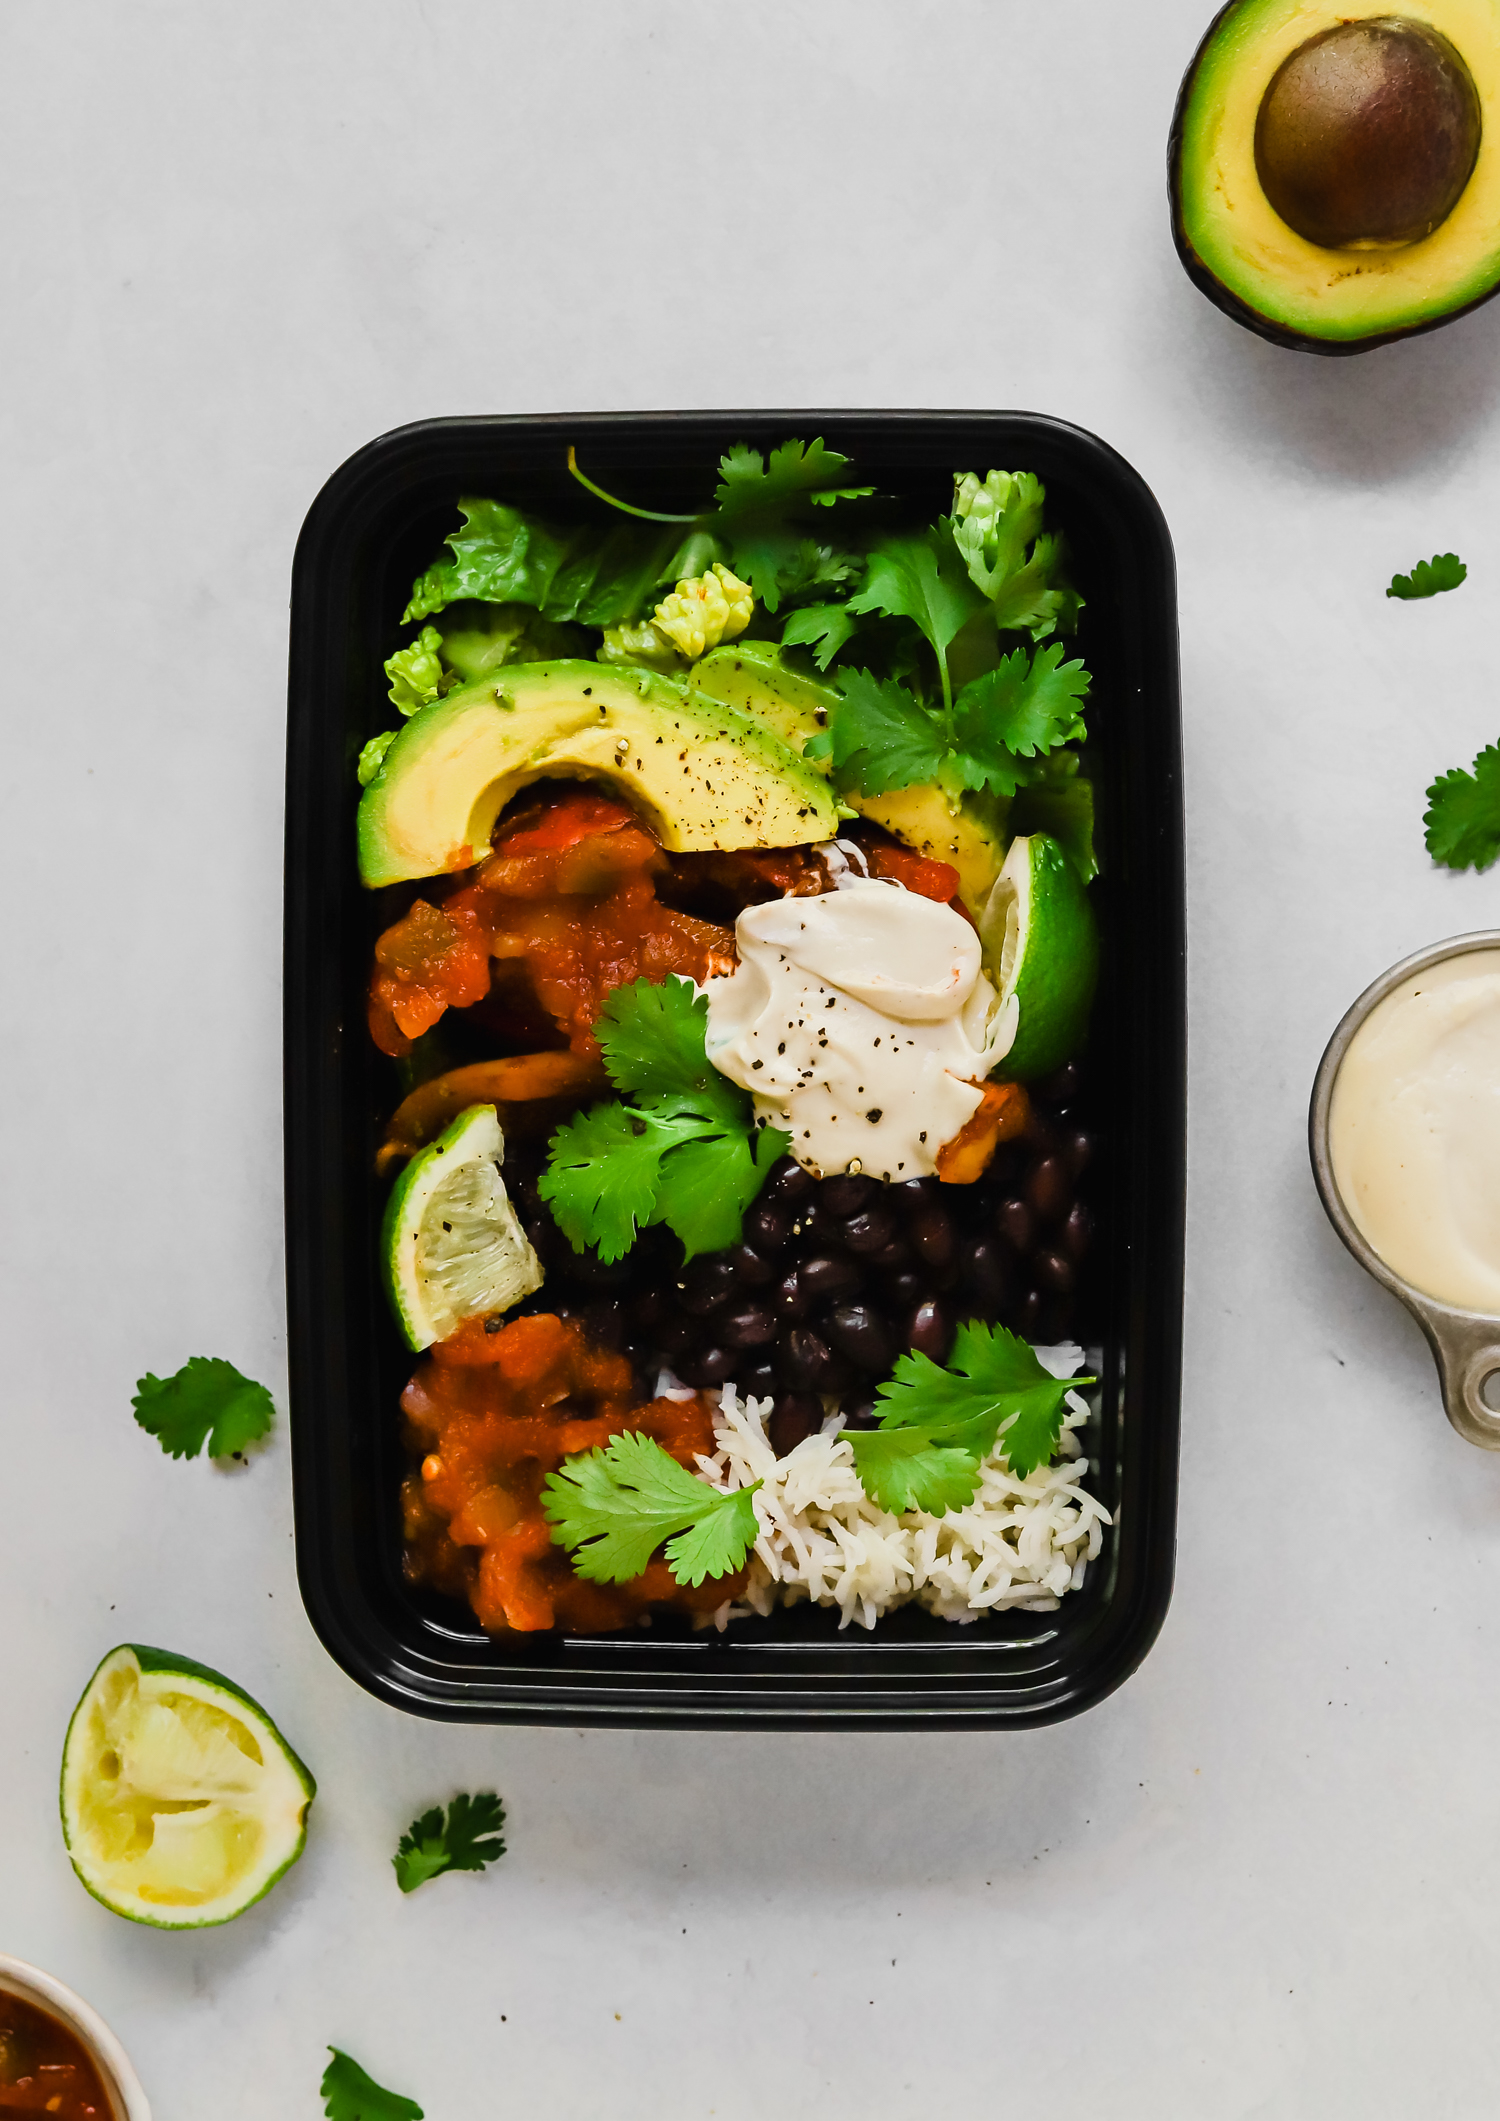 Vegan burrito bowl in a black meal prep container surrounded by lime wedges, vegan sour cream, and cilantro.